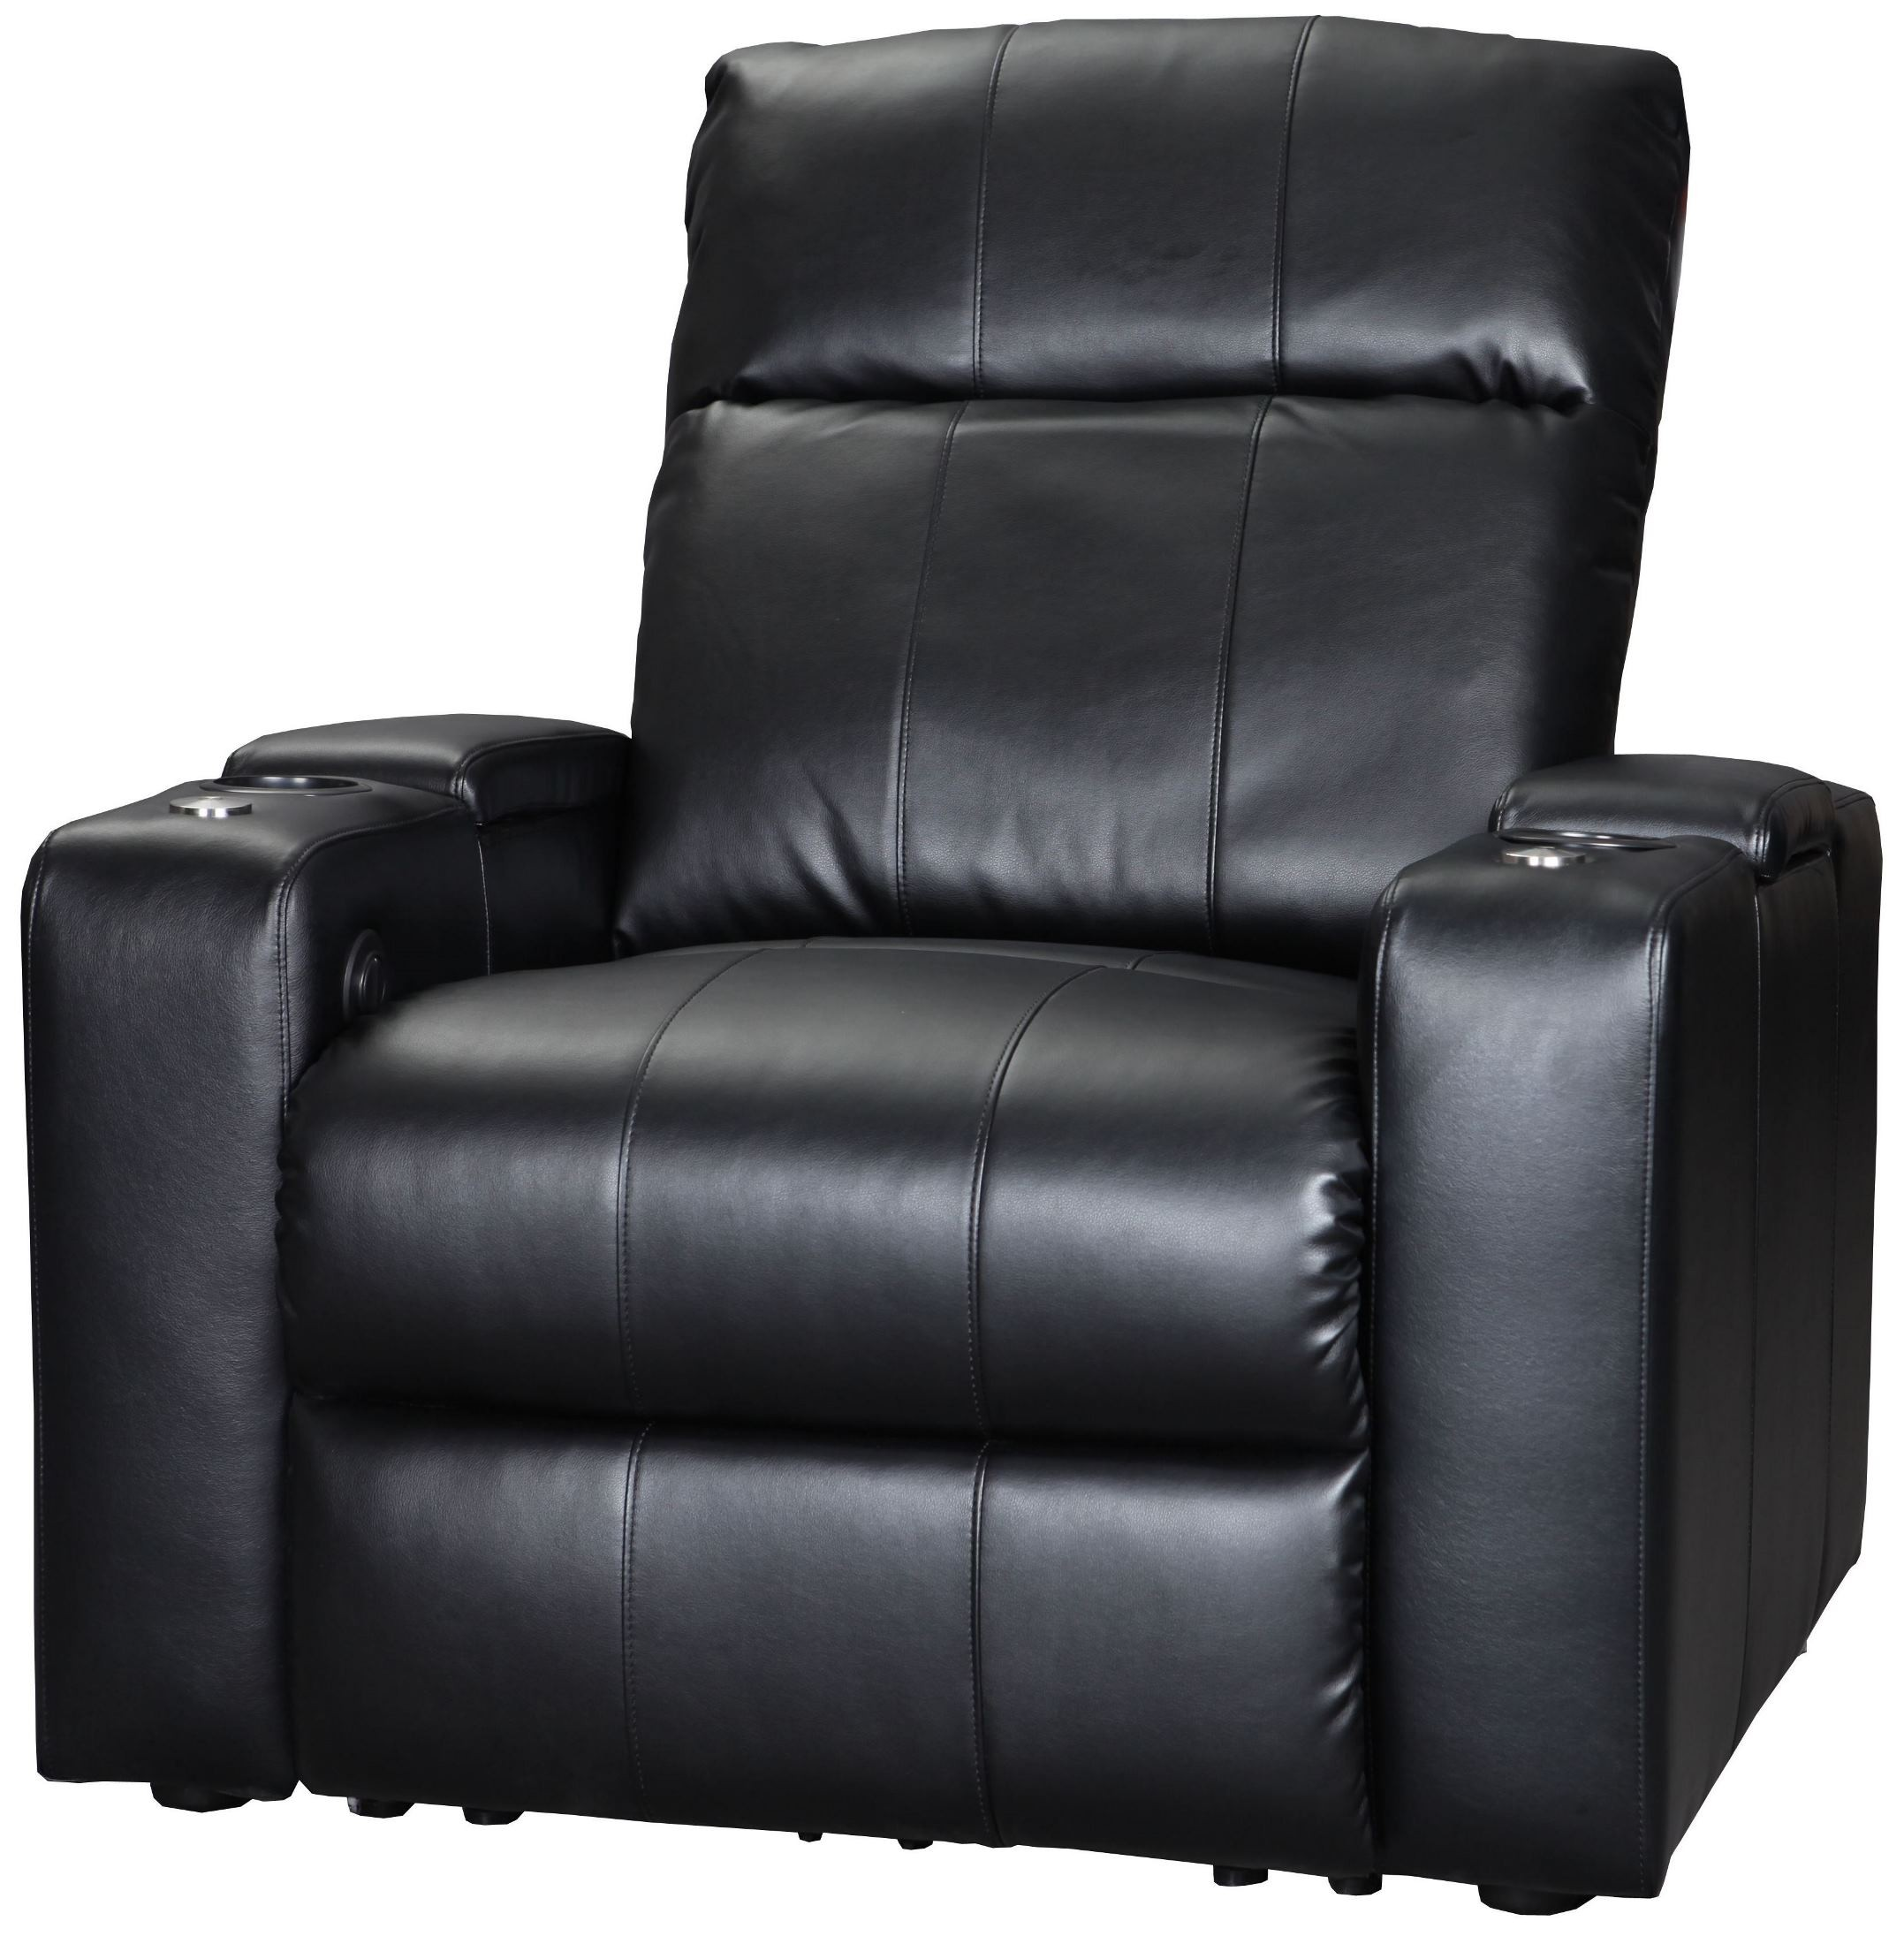 Plaza Black Bonded Leather 2 Arm Power Recliner from Row e